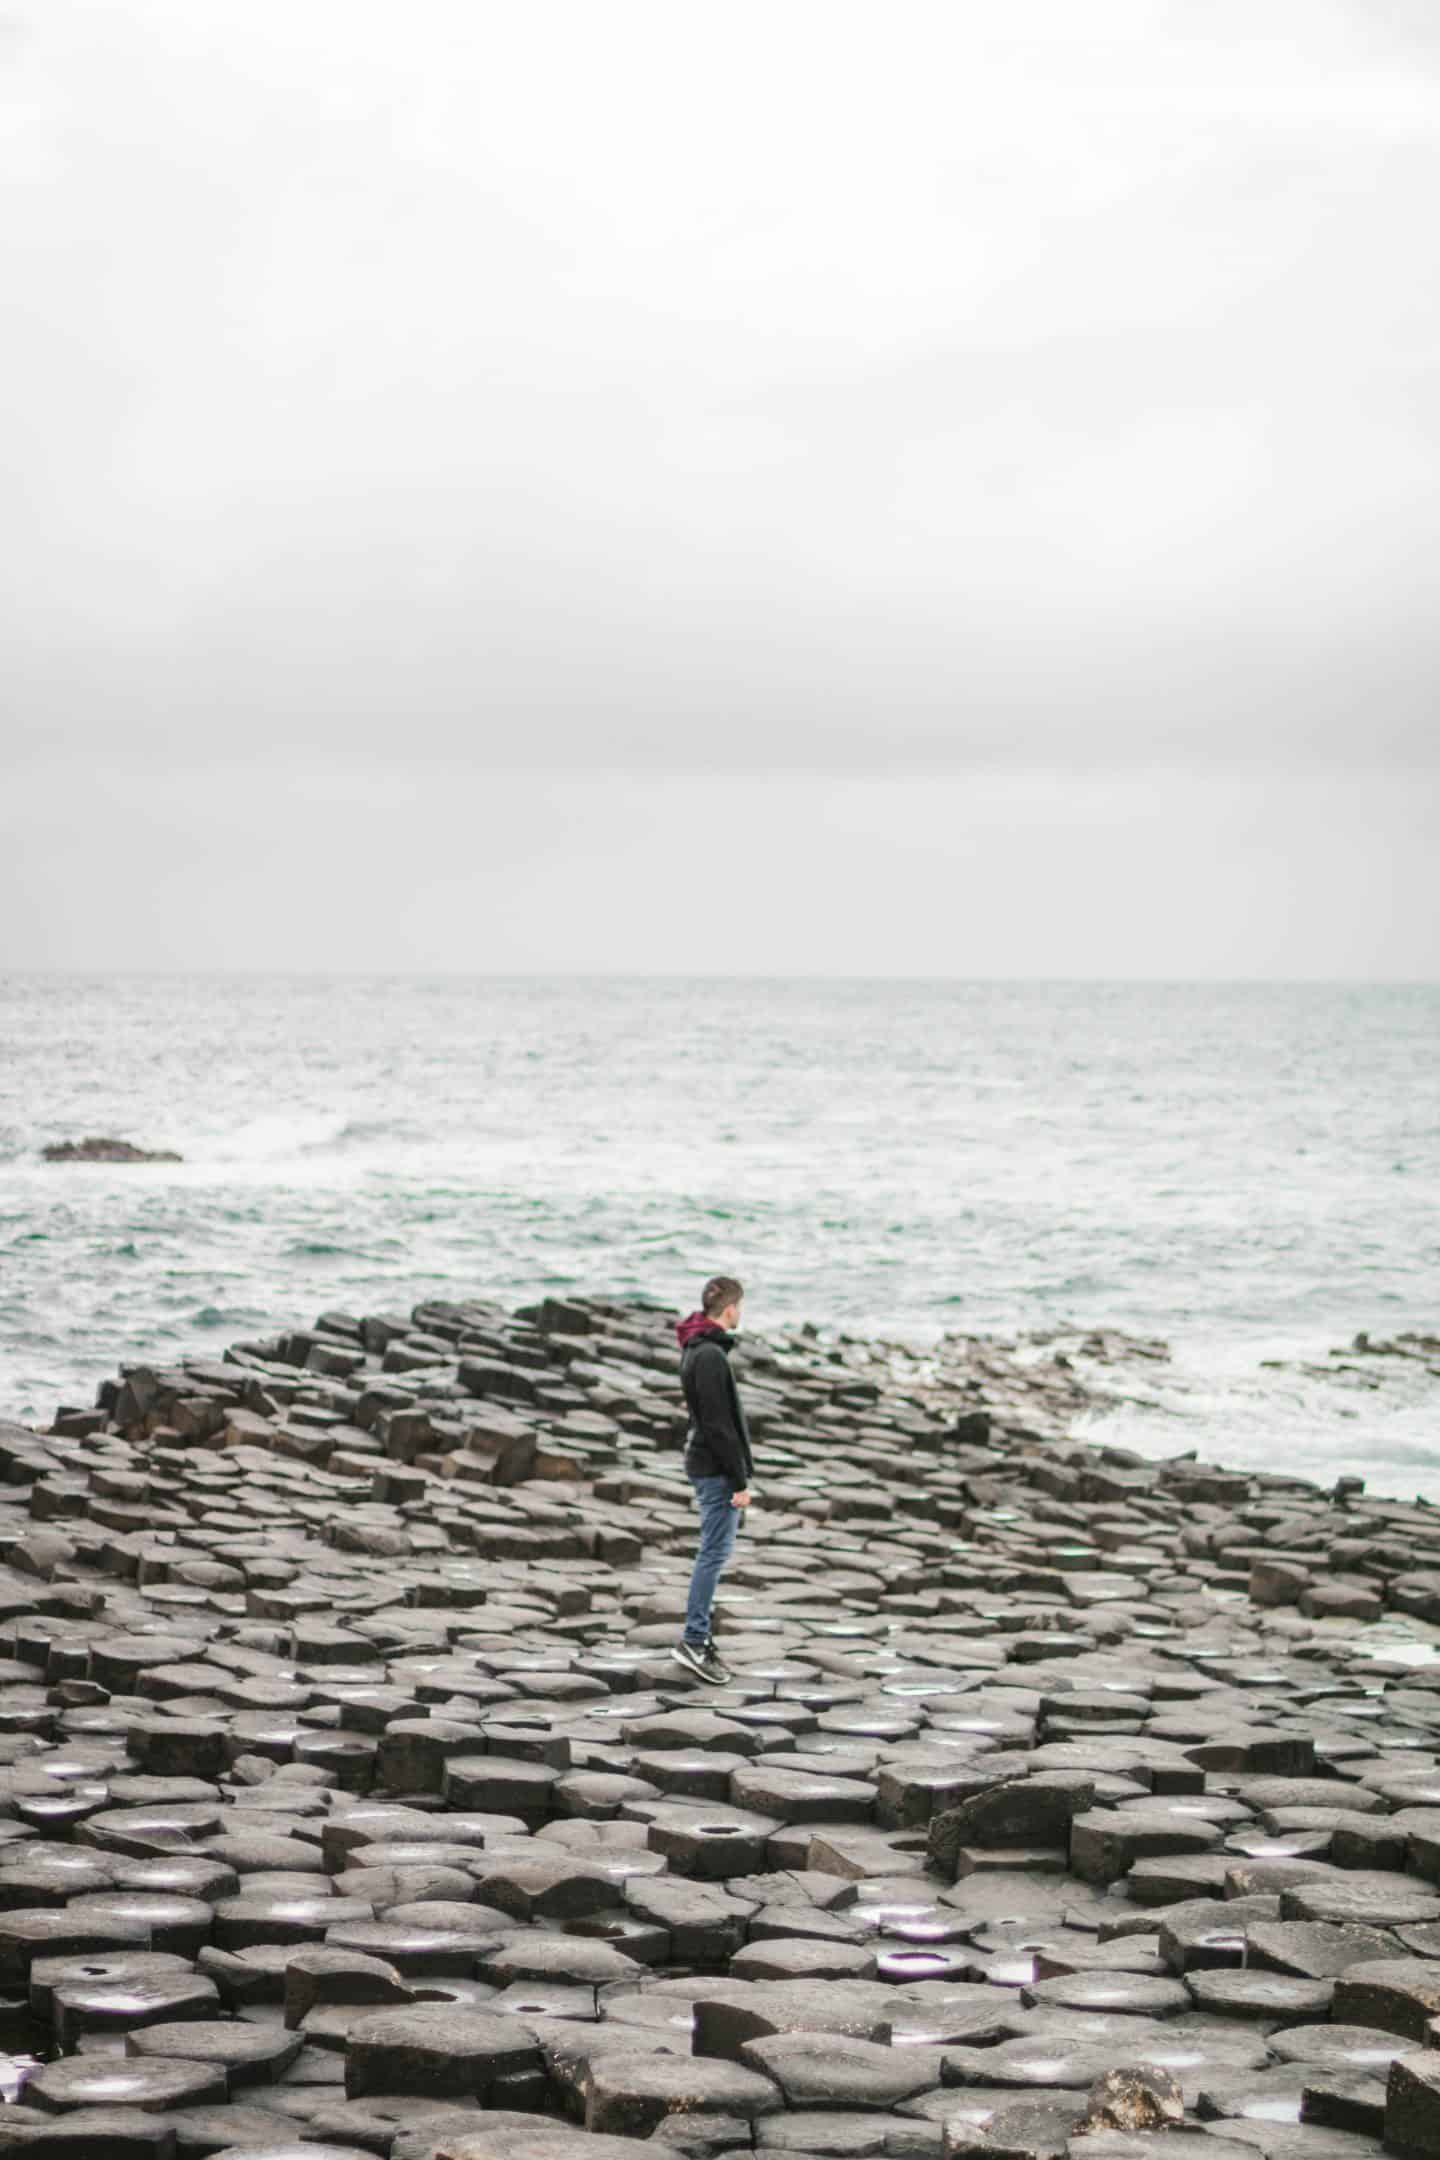 The Giant's Causeway is worth stopping along your Ireland road trip itinerary